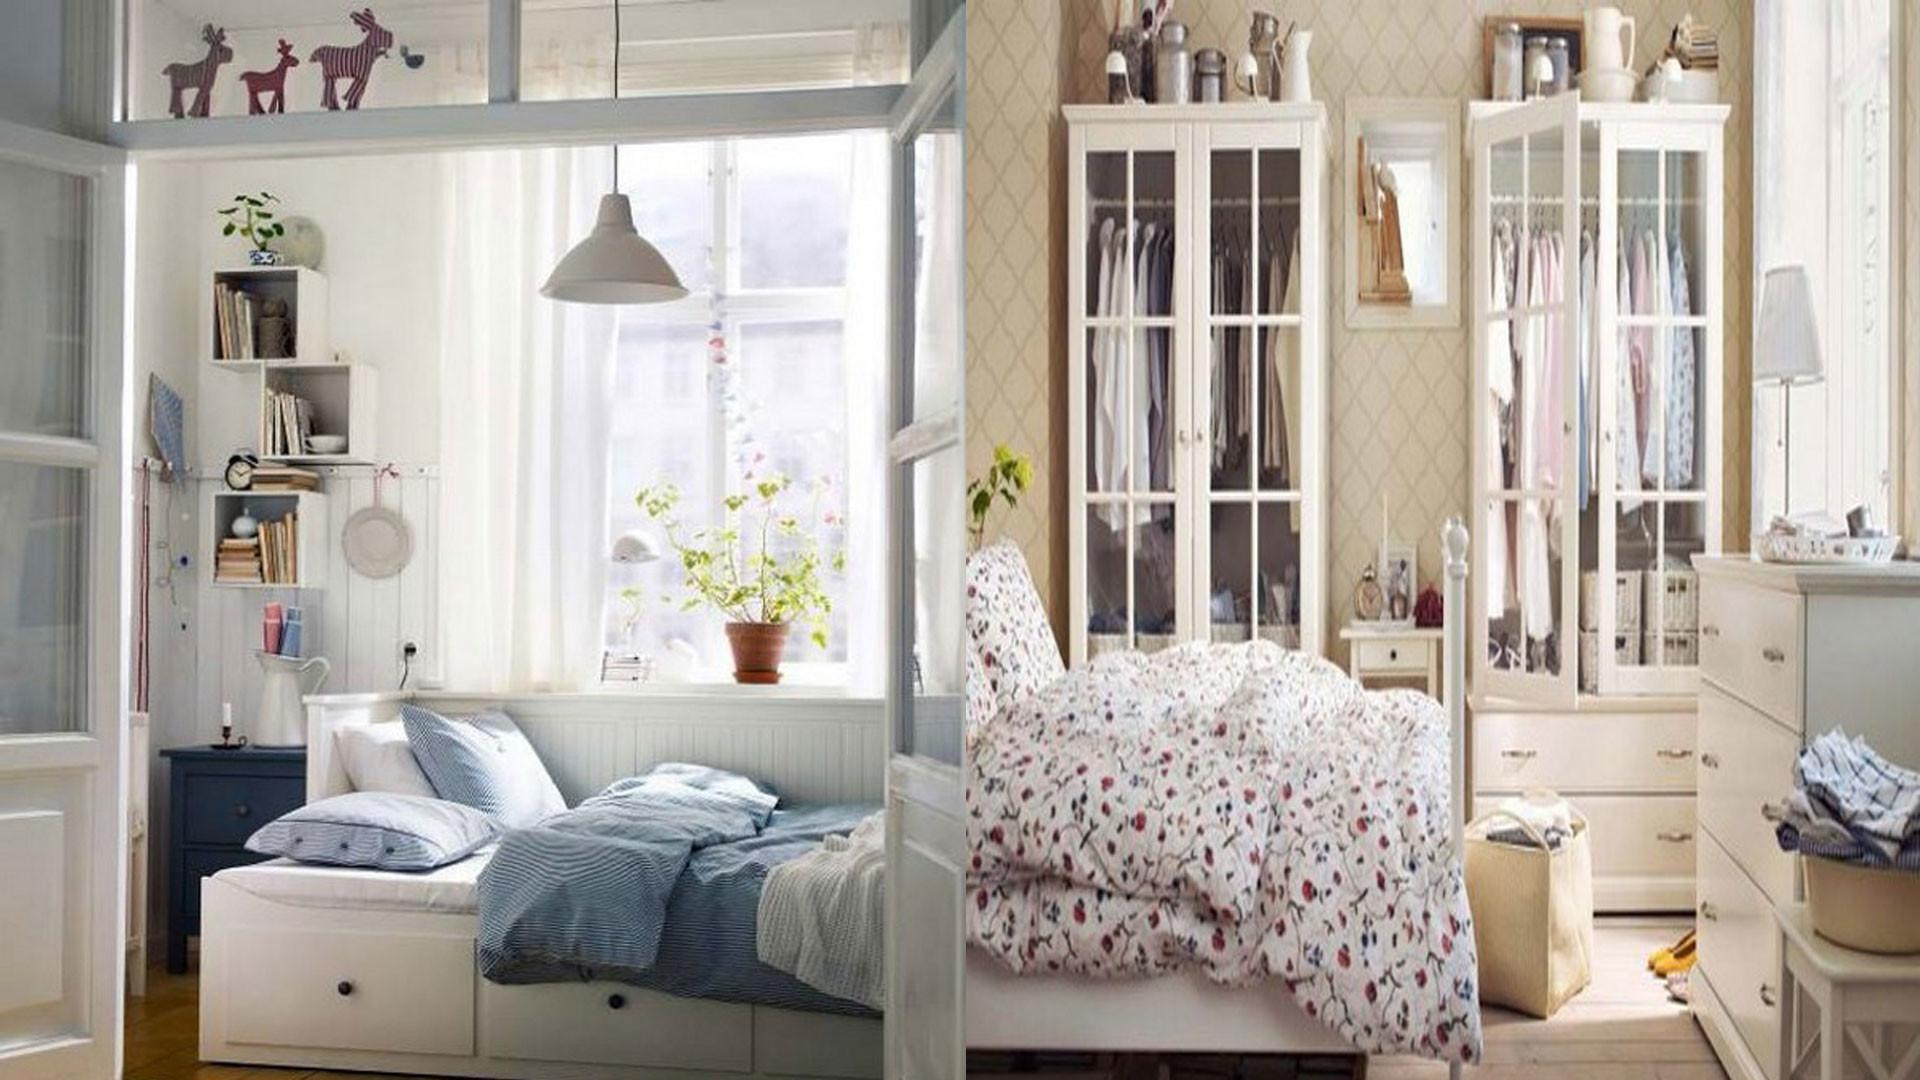 Bedroom Solutions Small Spaces Design Ideas Idolza